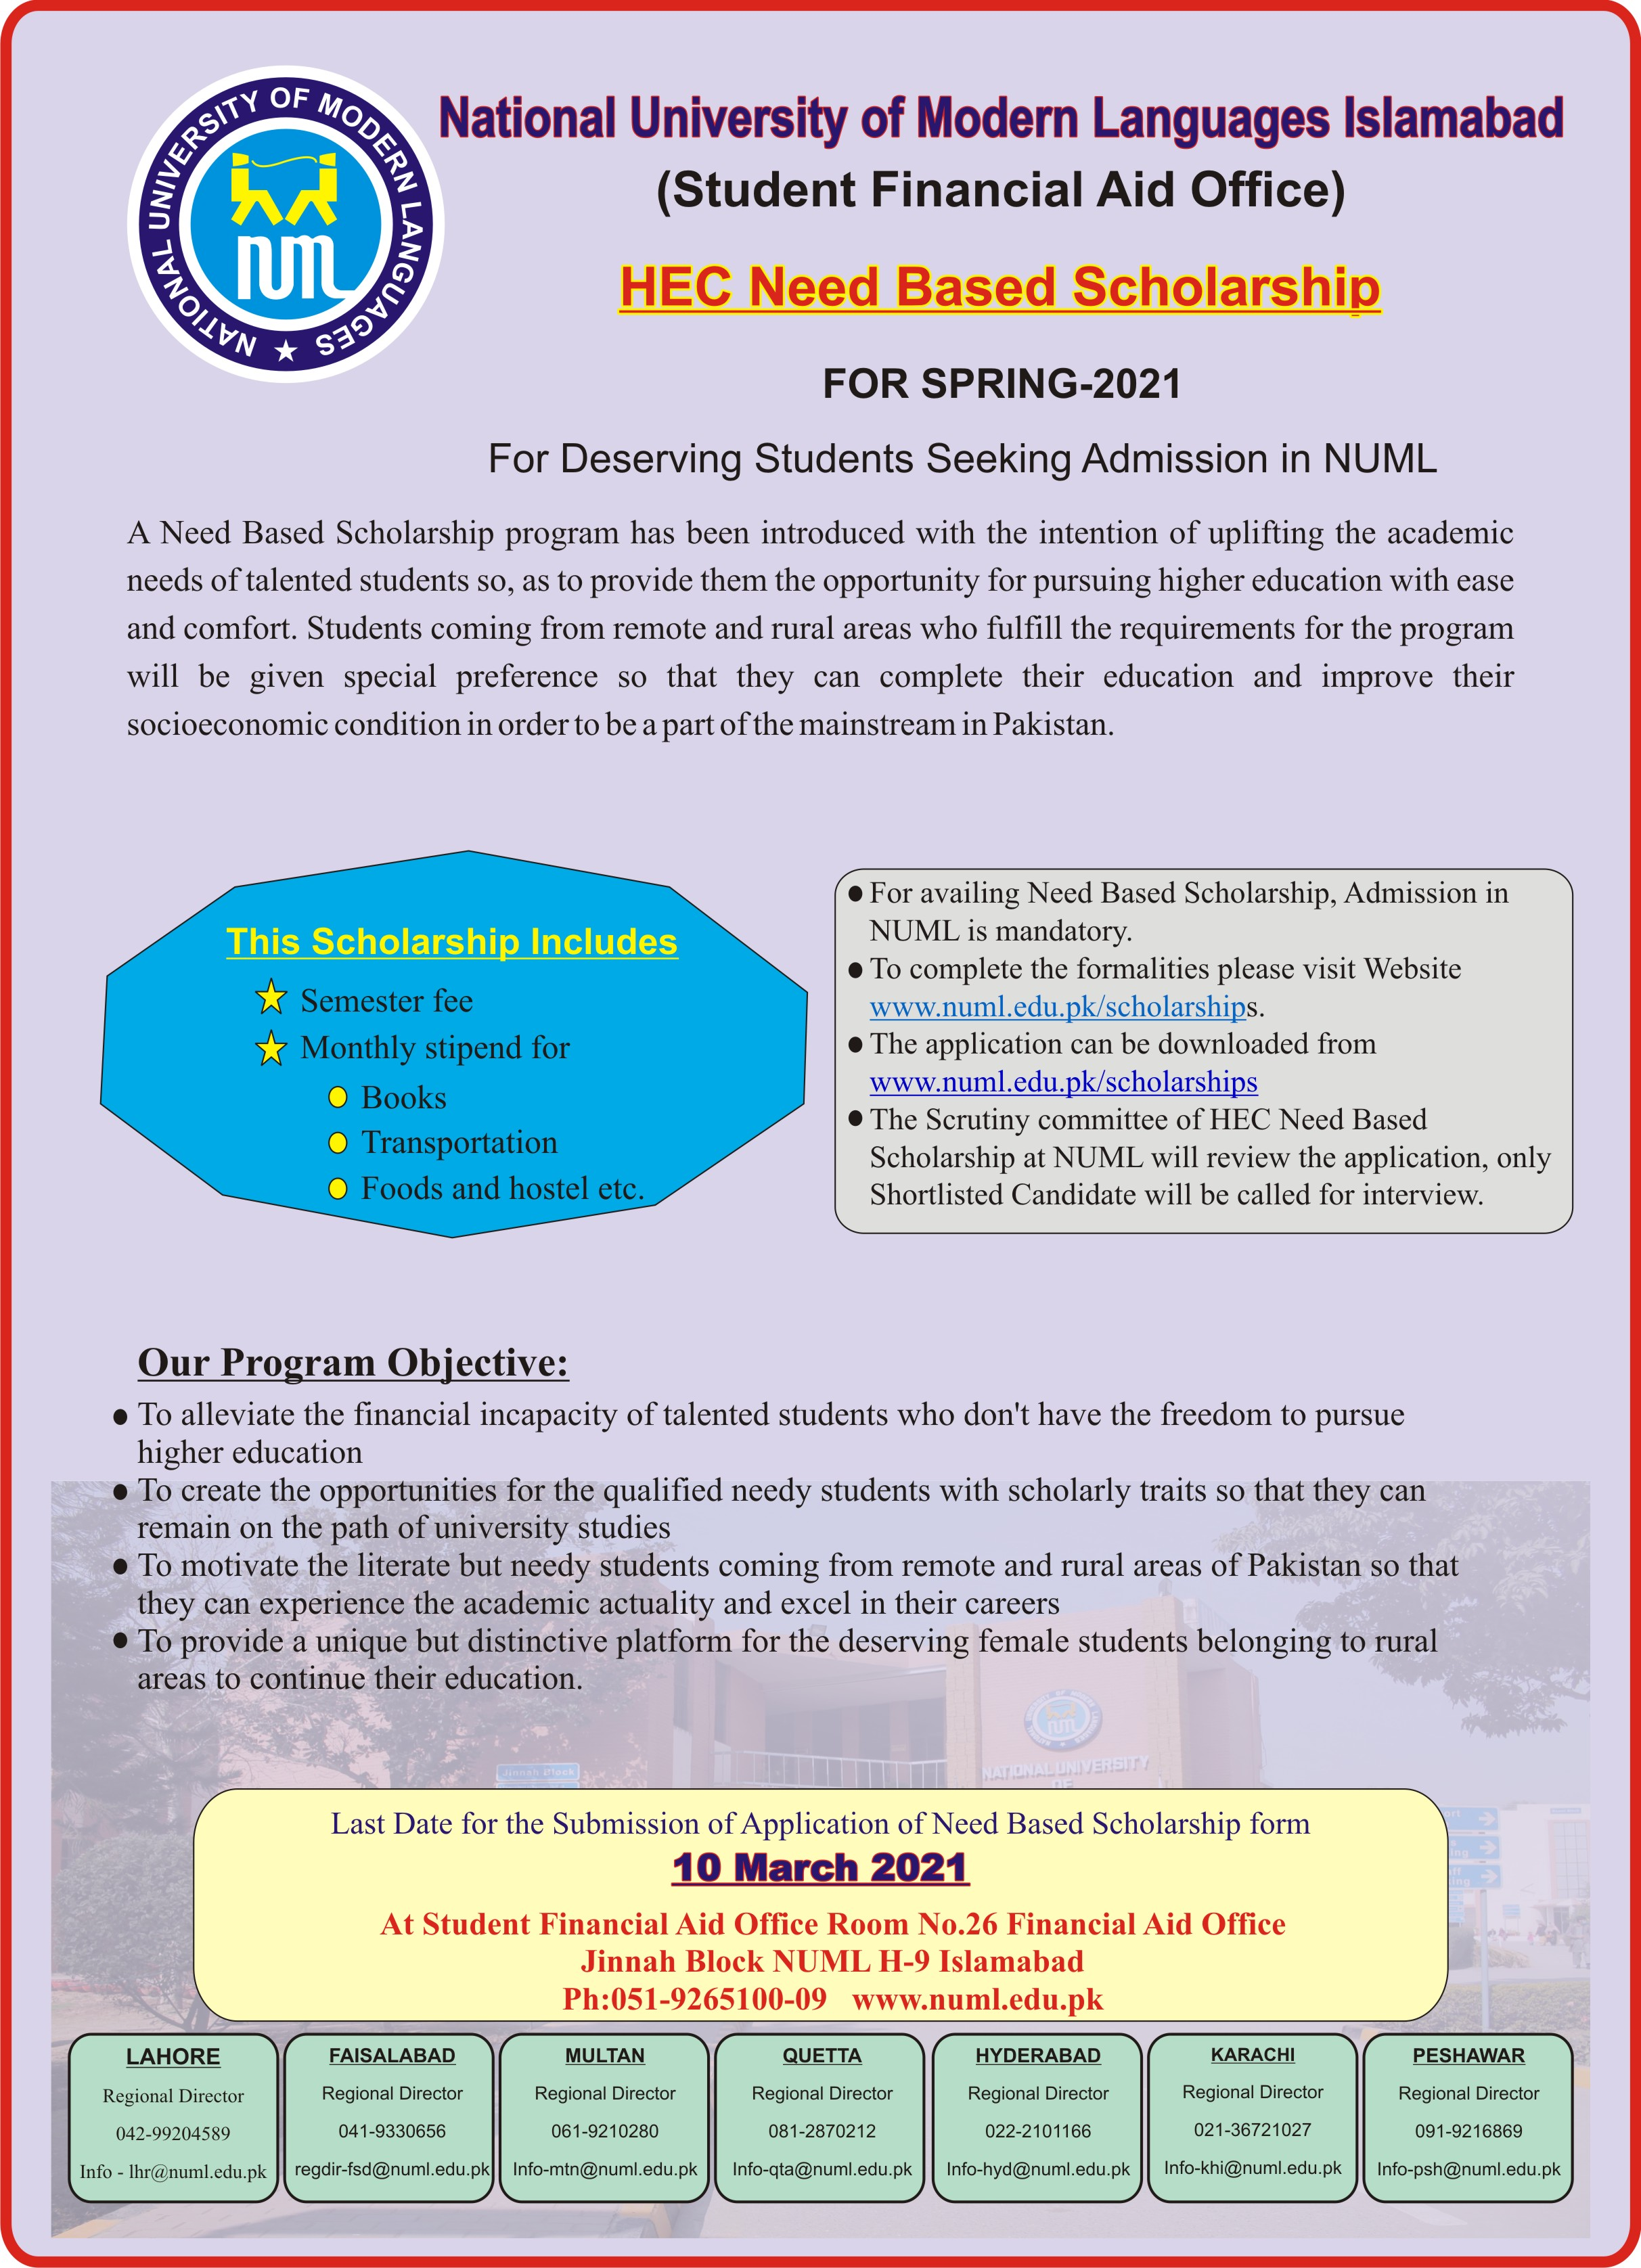 HEC Need Based Scholarship for the Semester Spring 2021